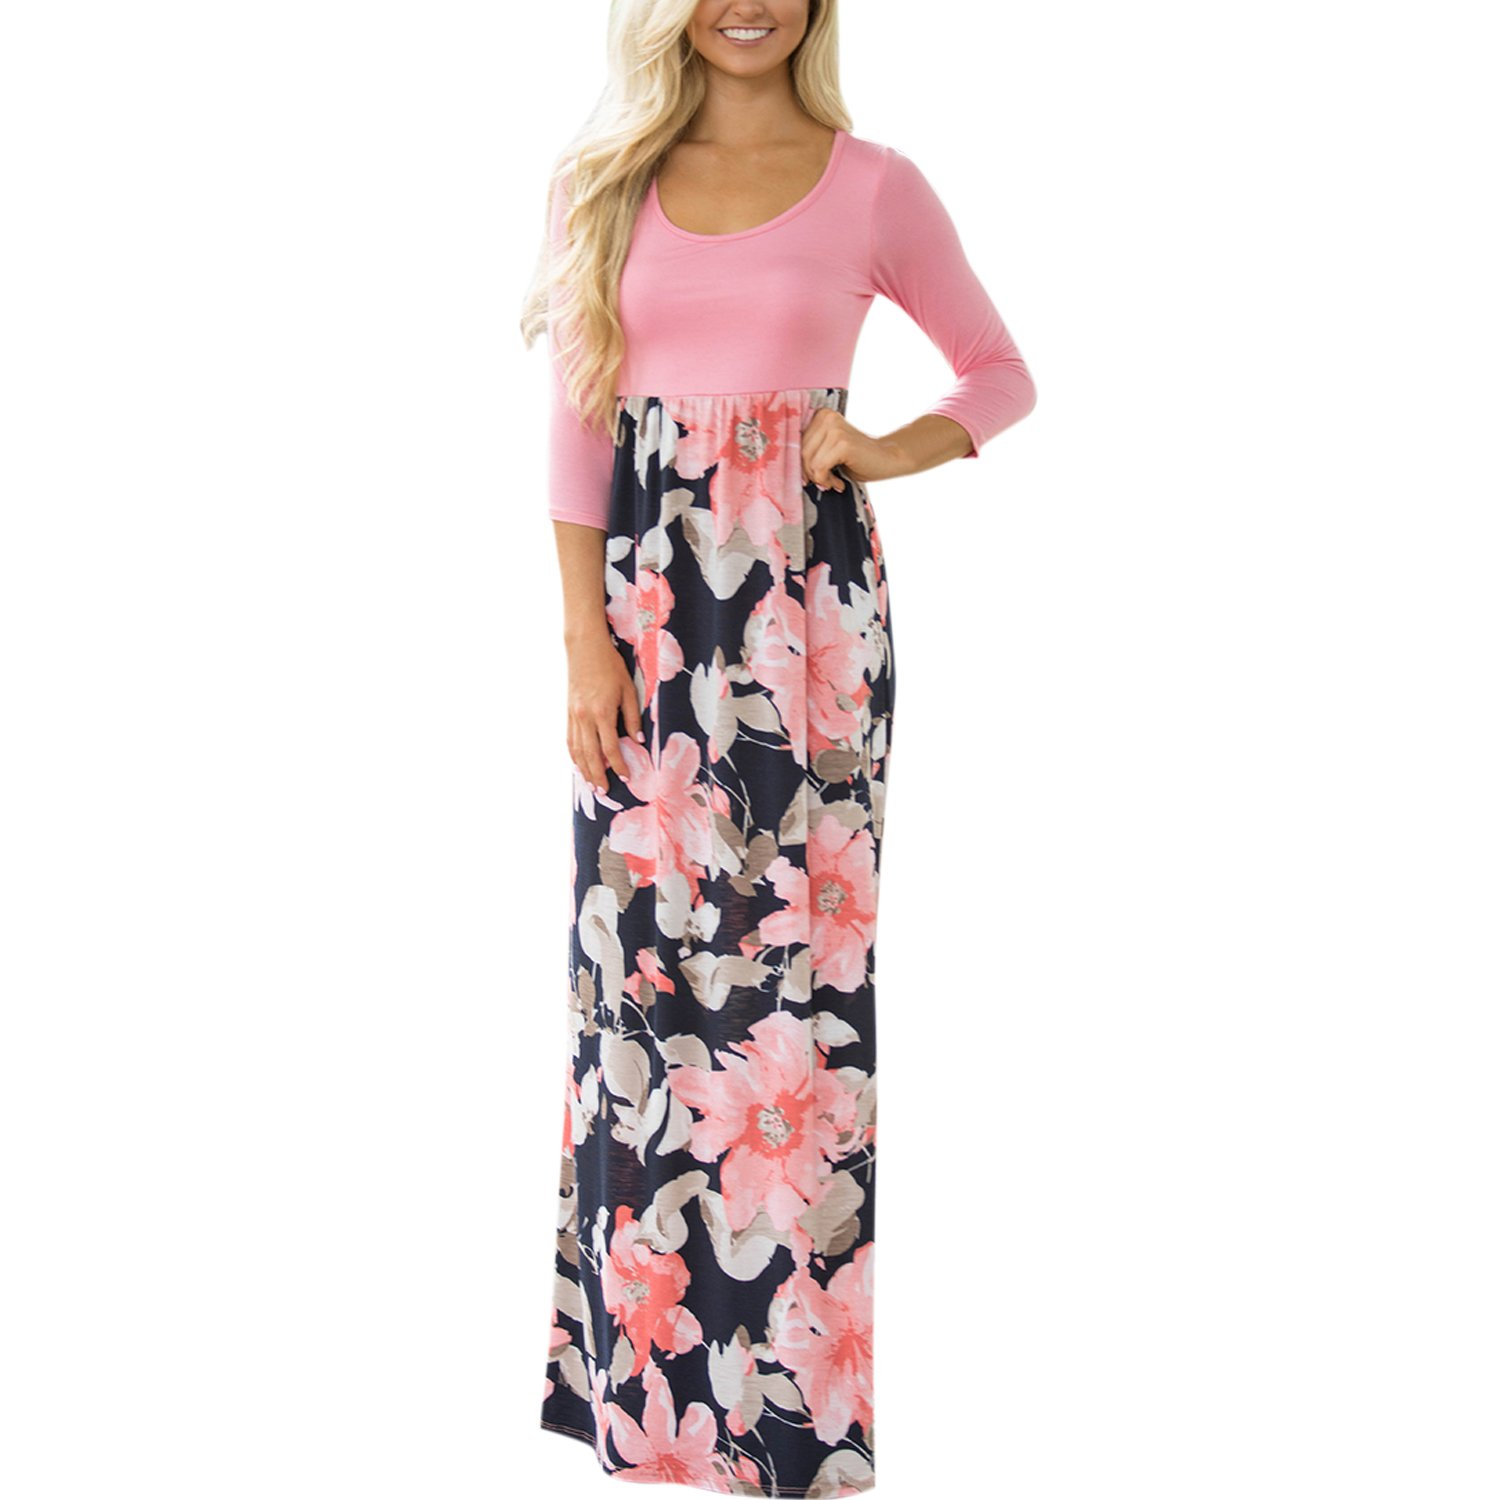 Misscat Women Maxi Dress 3/4 Sleeve Floral Printed Spring Casual Loose One-piece